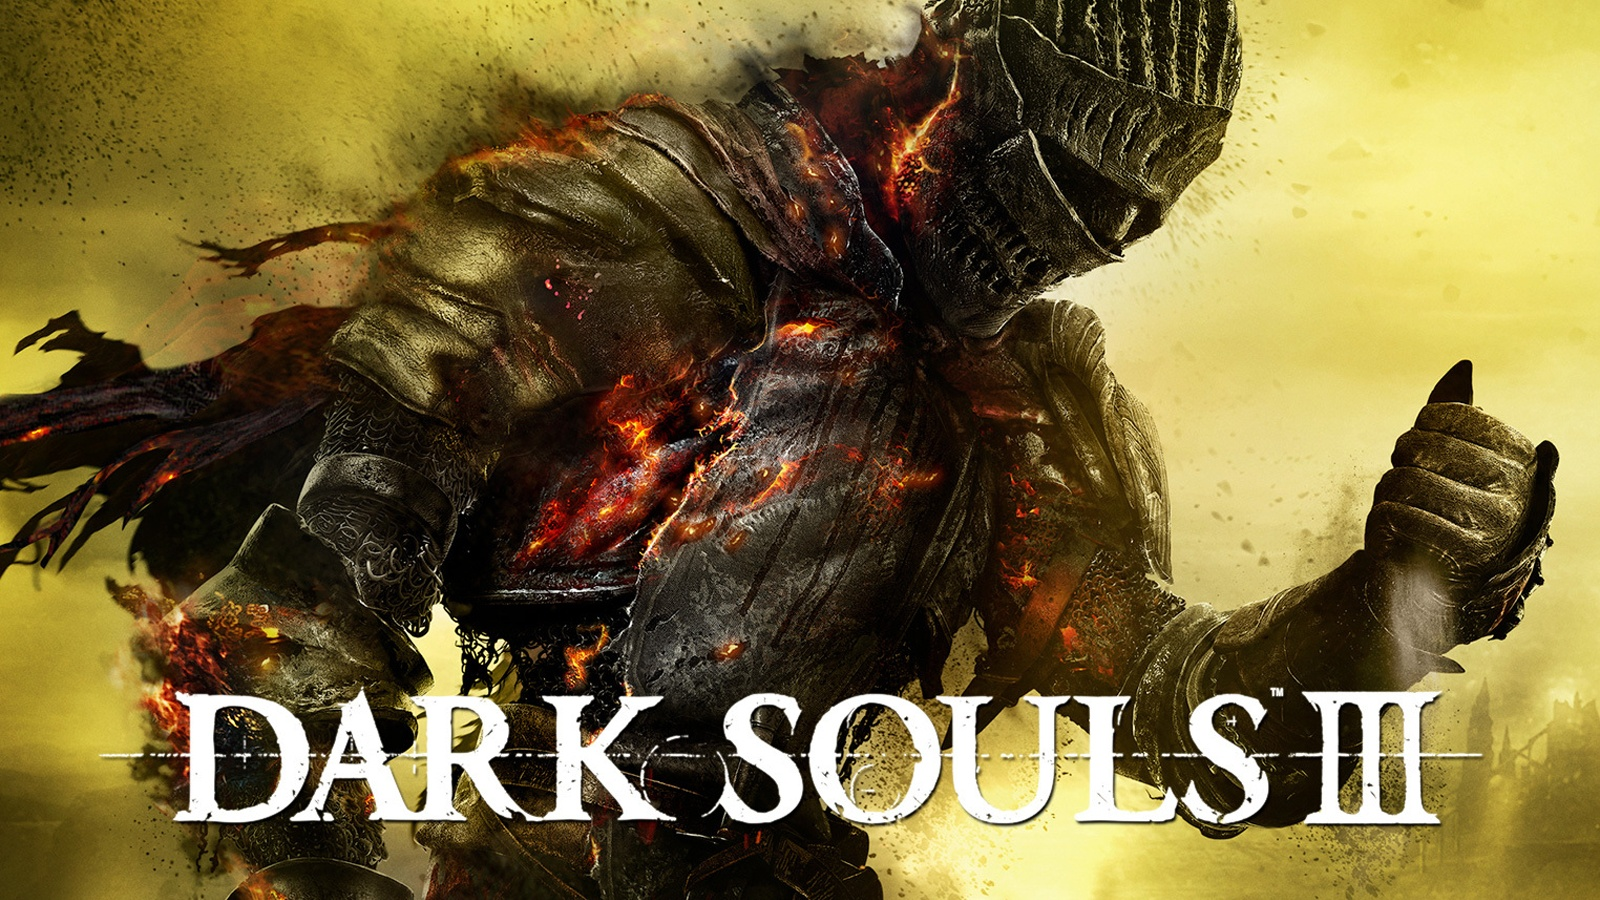 29 2015 By Stephen Comments Off on Dark Souls 3 HD Wallpaper 1600x900